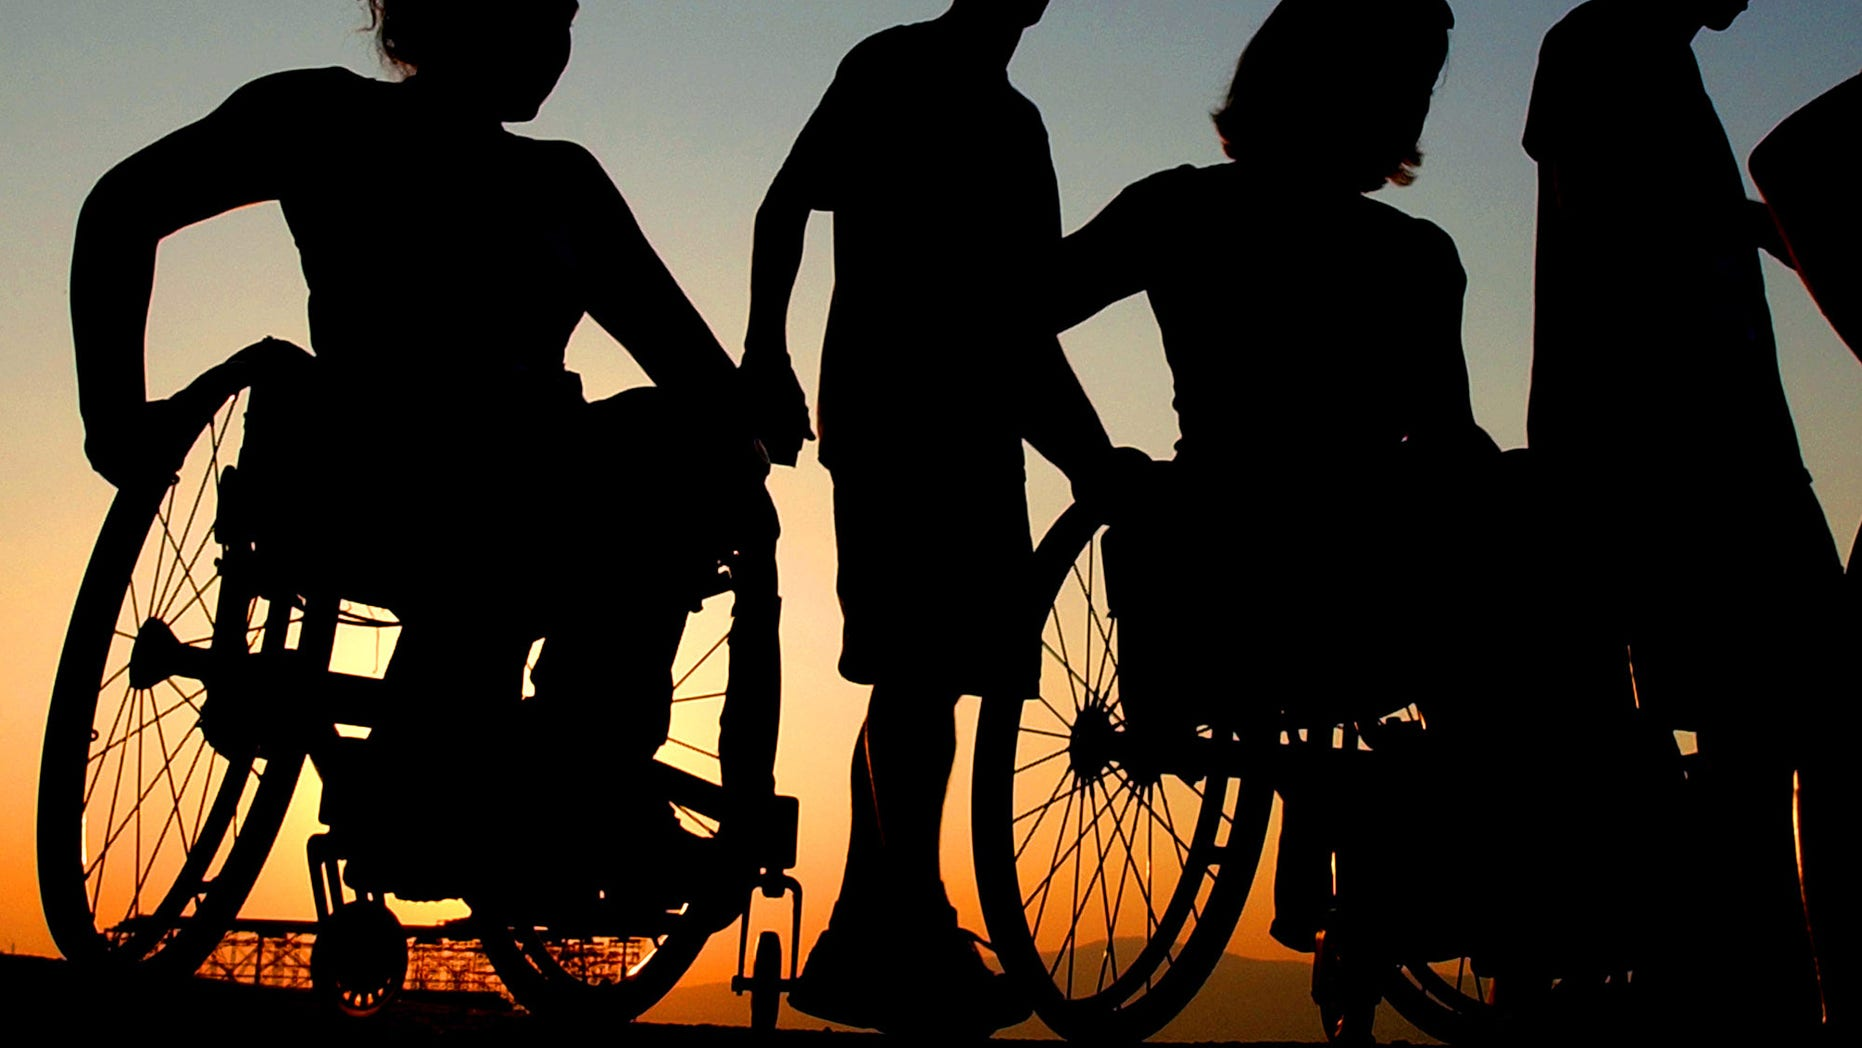 Members of the U.S. women's track and field Paralympic team, in wheelchairs, visit the Acropolis Hill with escorts, in Athens on Wednesday, Sept. 15, 2004. The Athens Paralympics start Friday. (AP Photo/Petros karadjias)